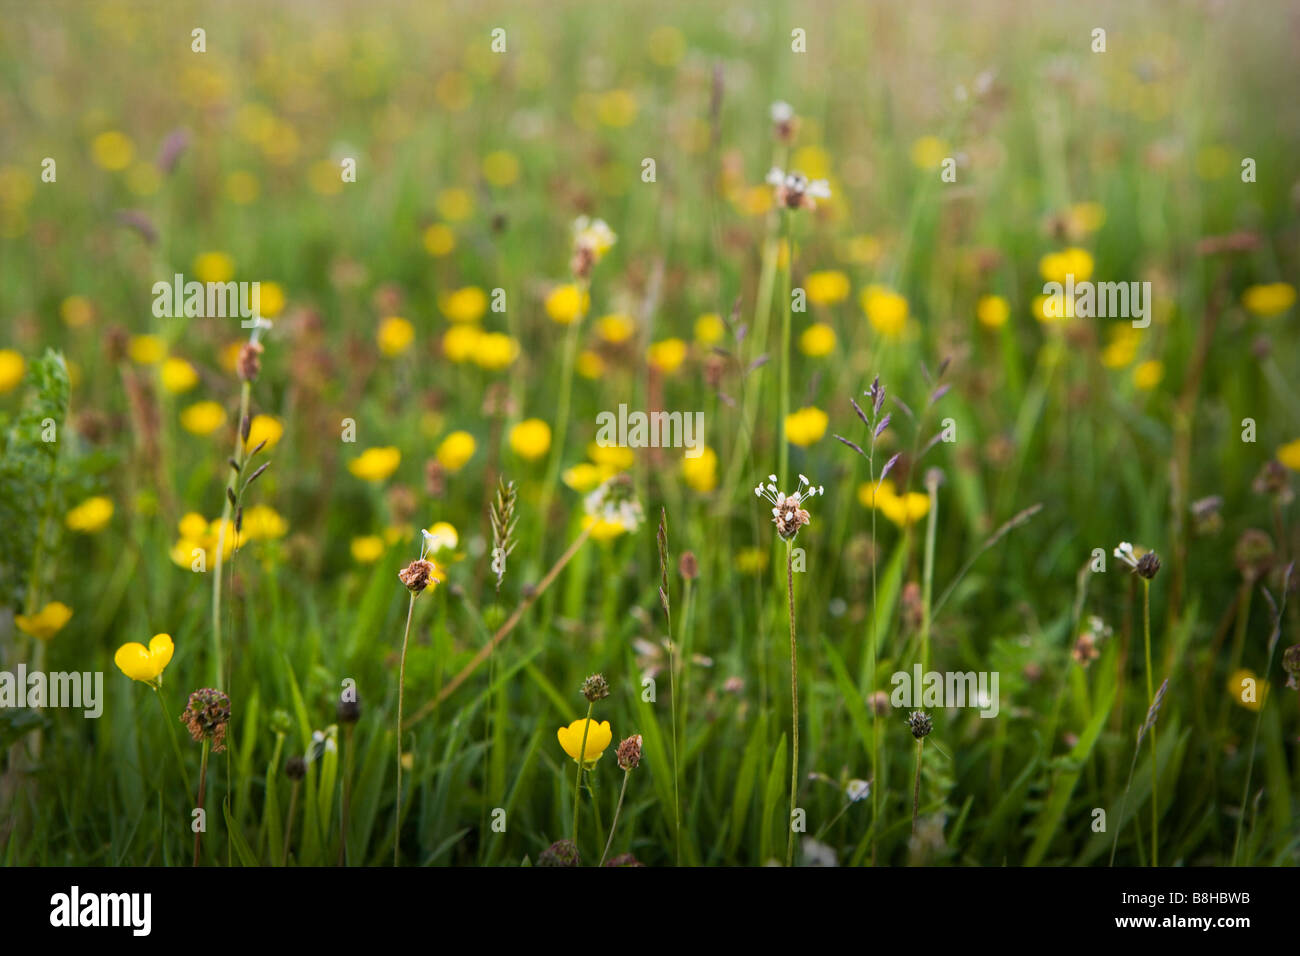 Wild flower meadow - Stock Image